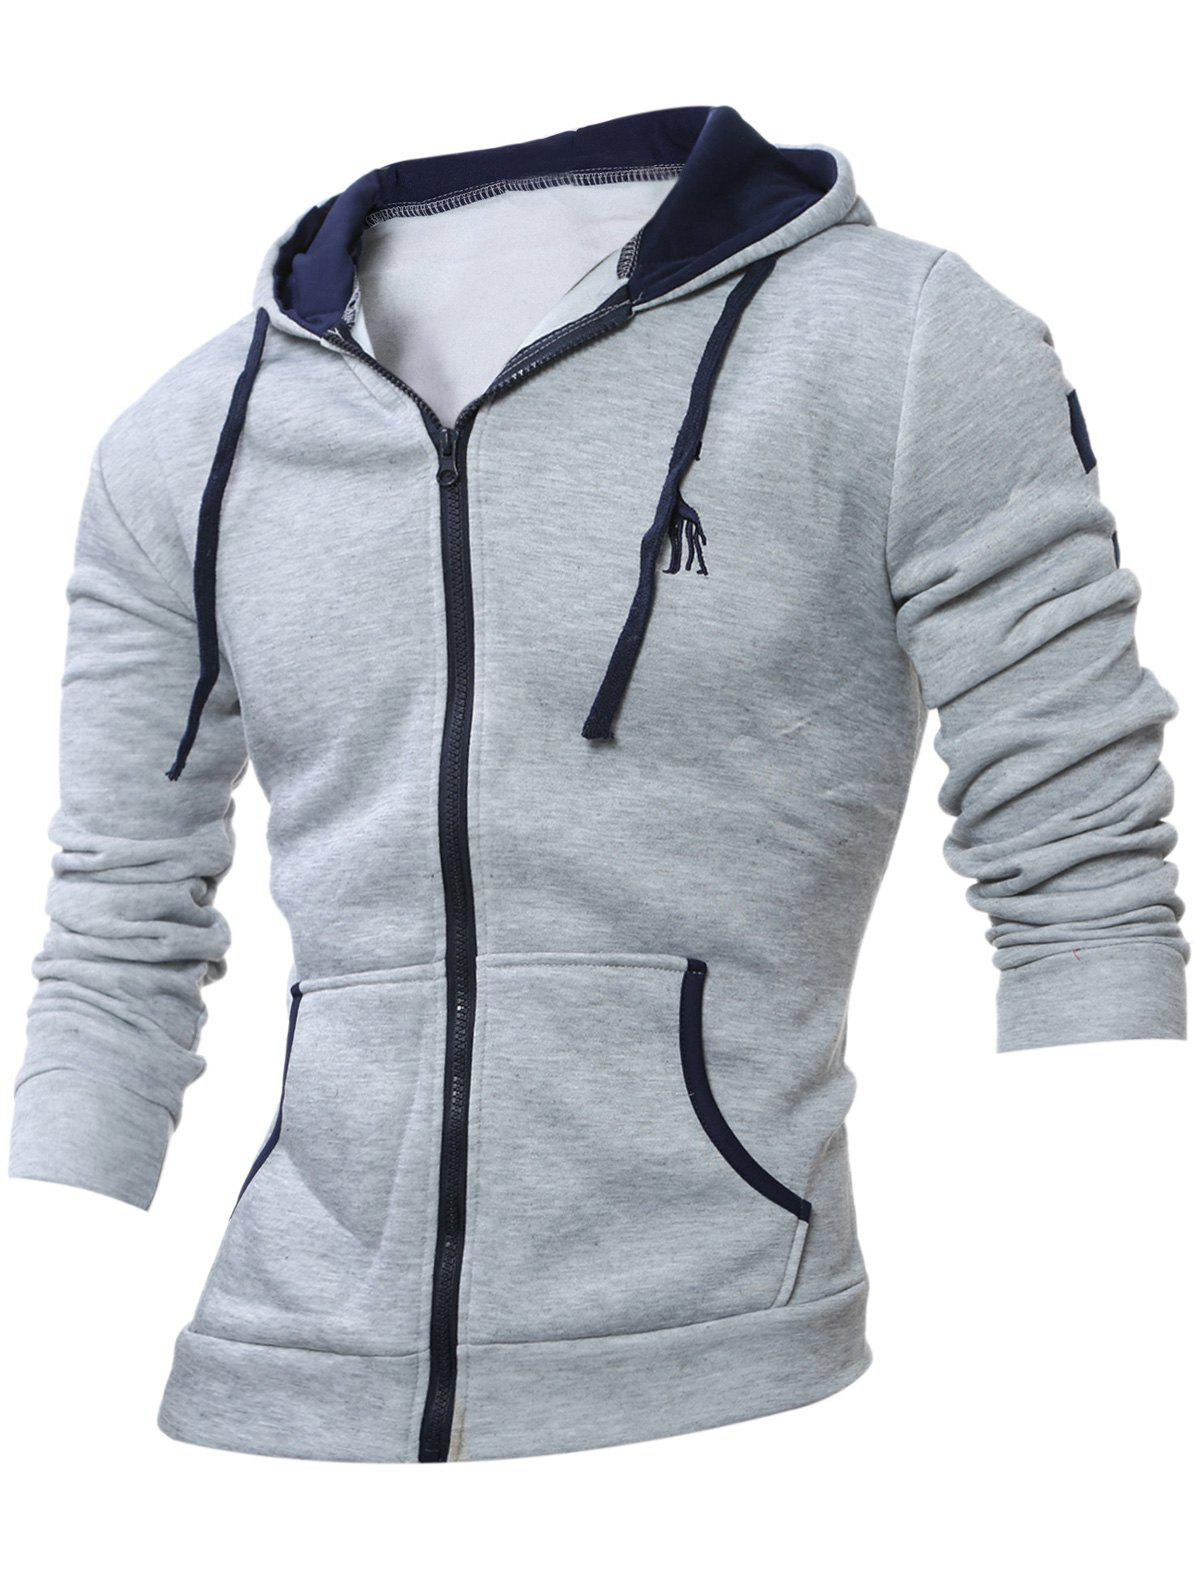 Broderie Zip Up Hoodie à manches longues